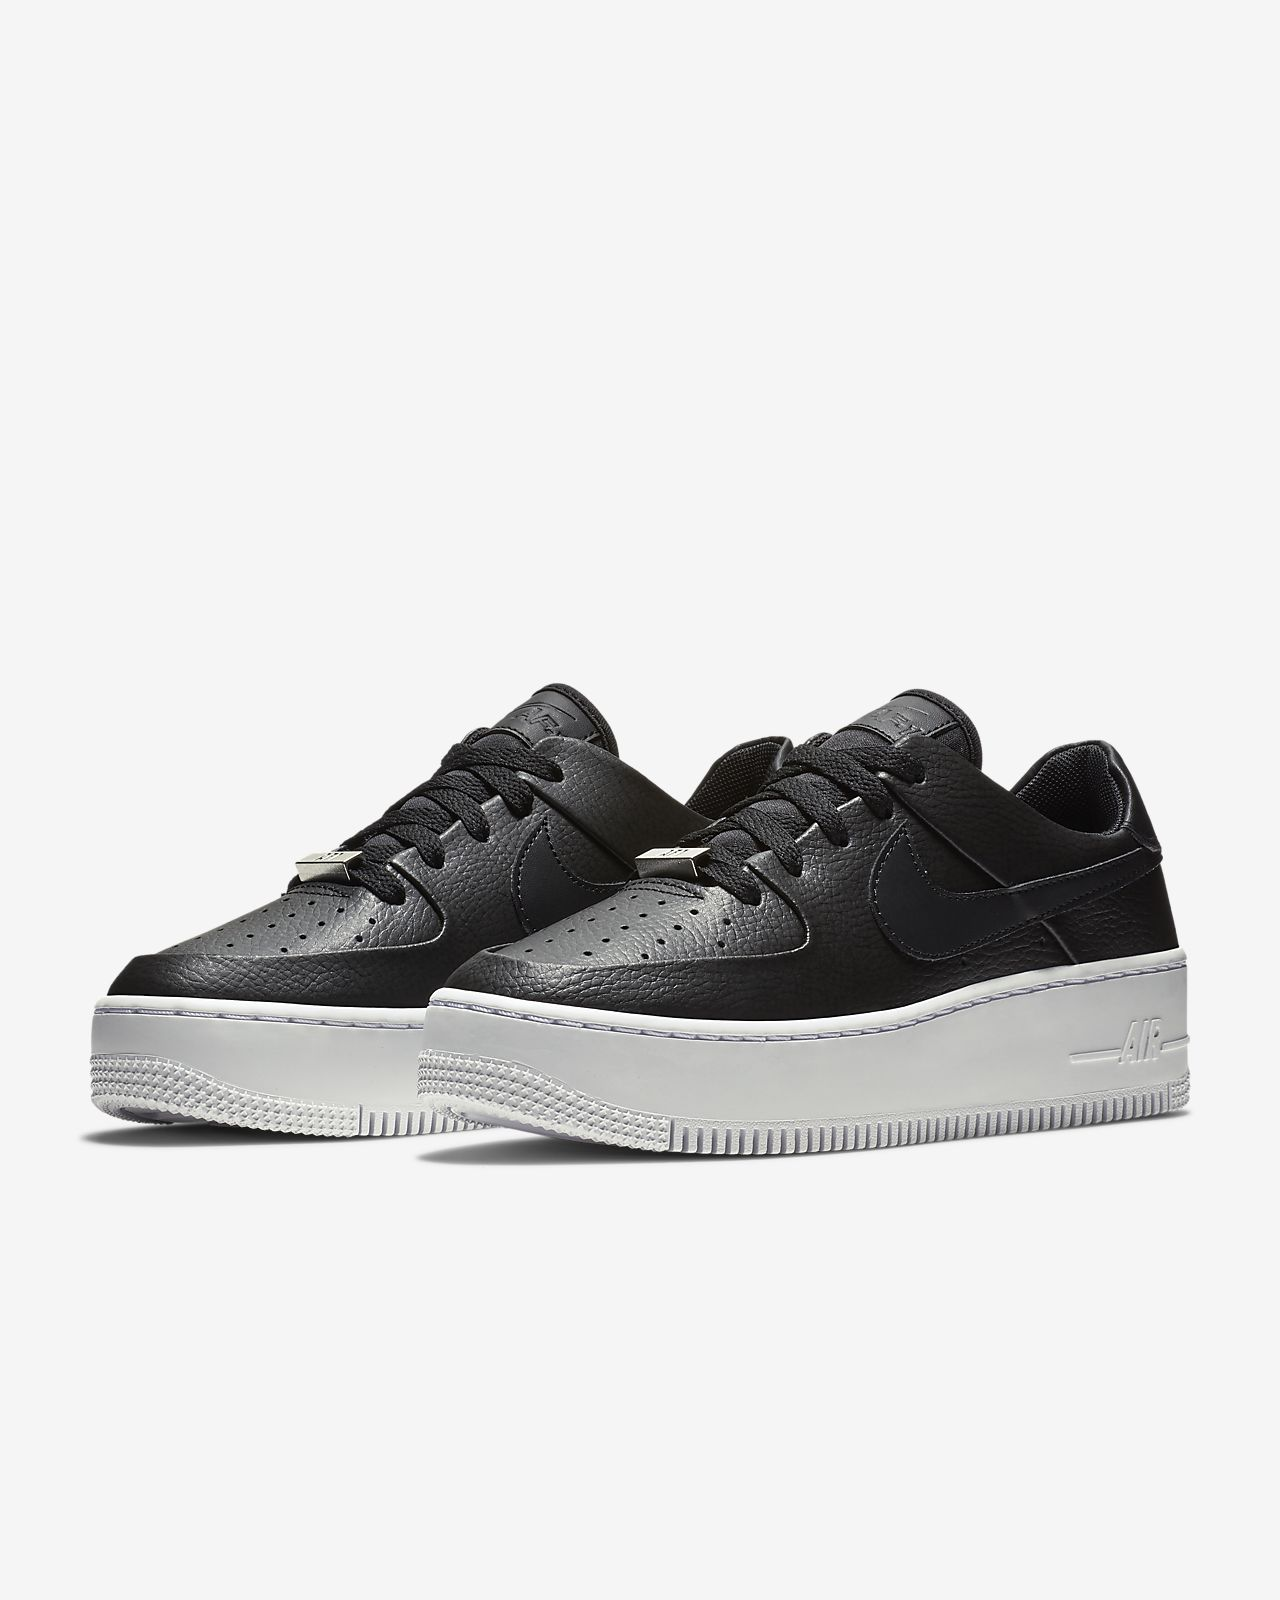 40 Damen Nike Wmns Air Force 1 '07 Premium Neutral Olive